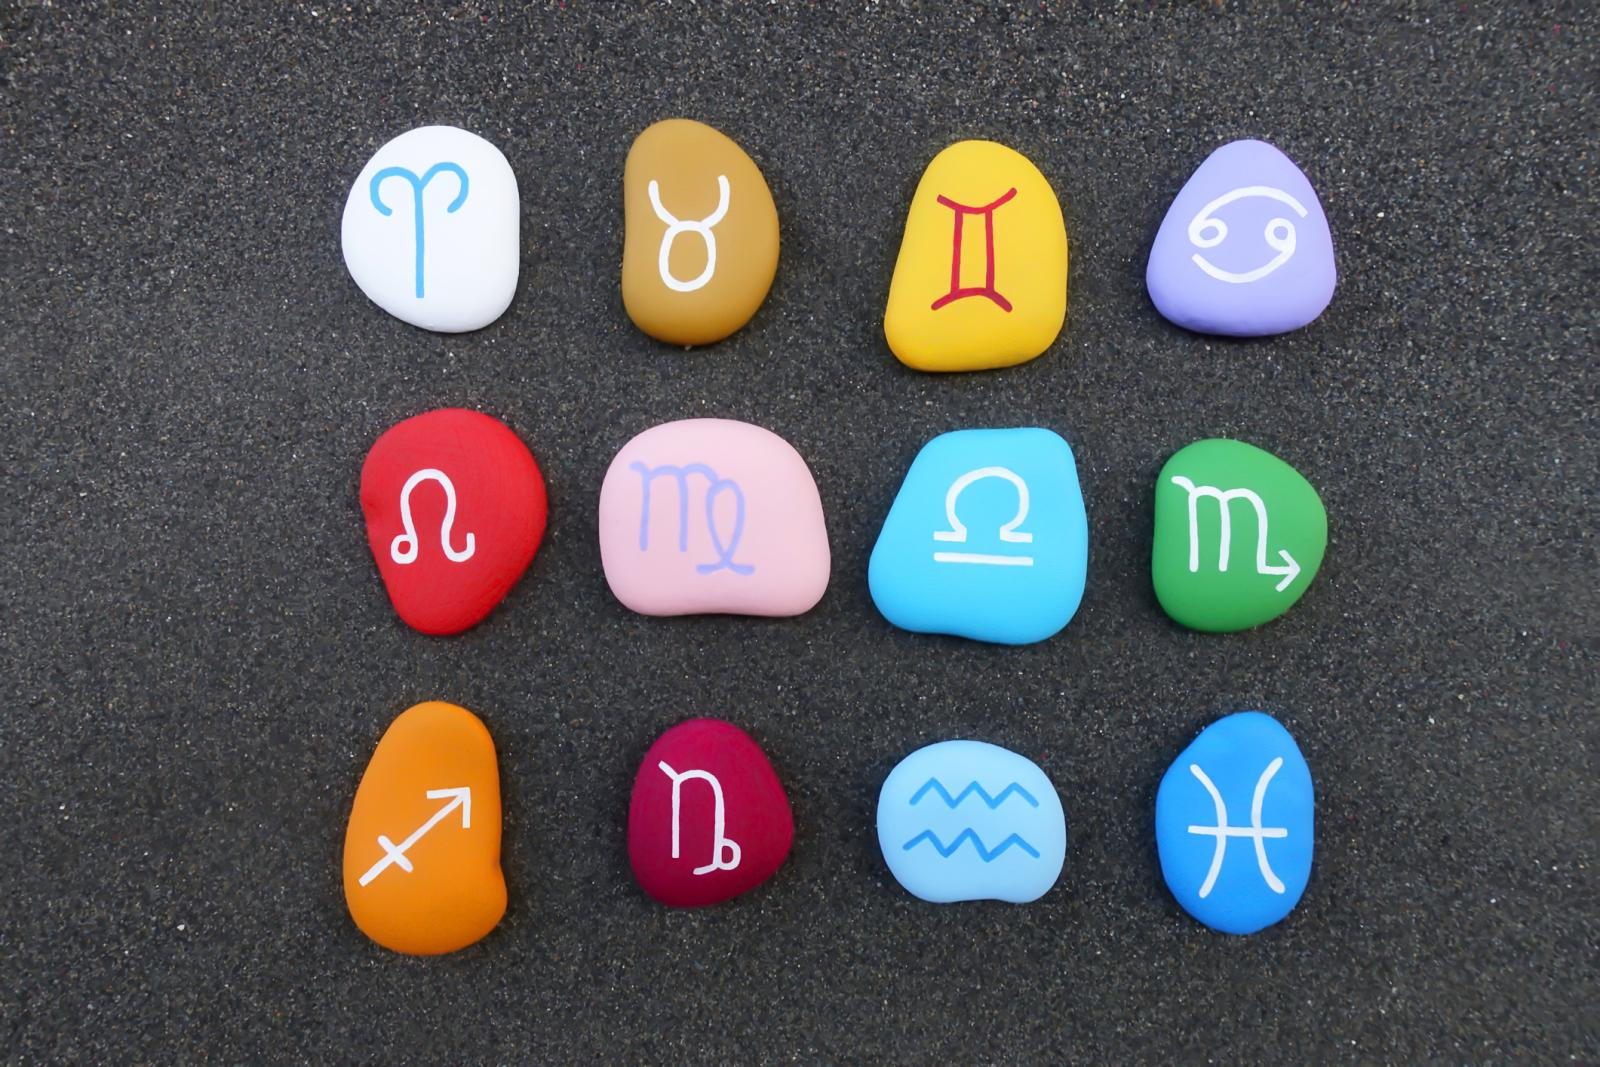 Astrology Signs Pebbles On Table